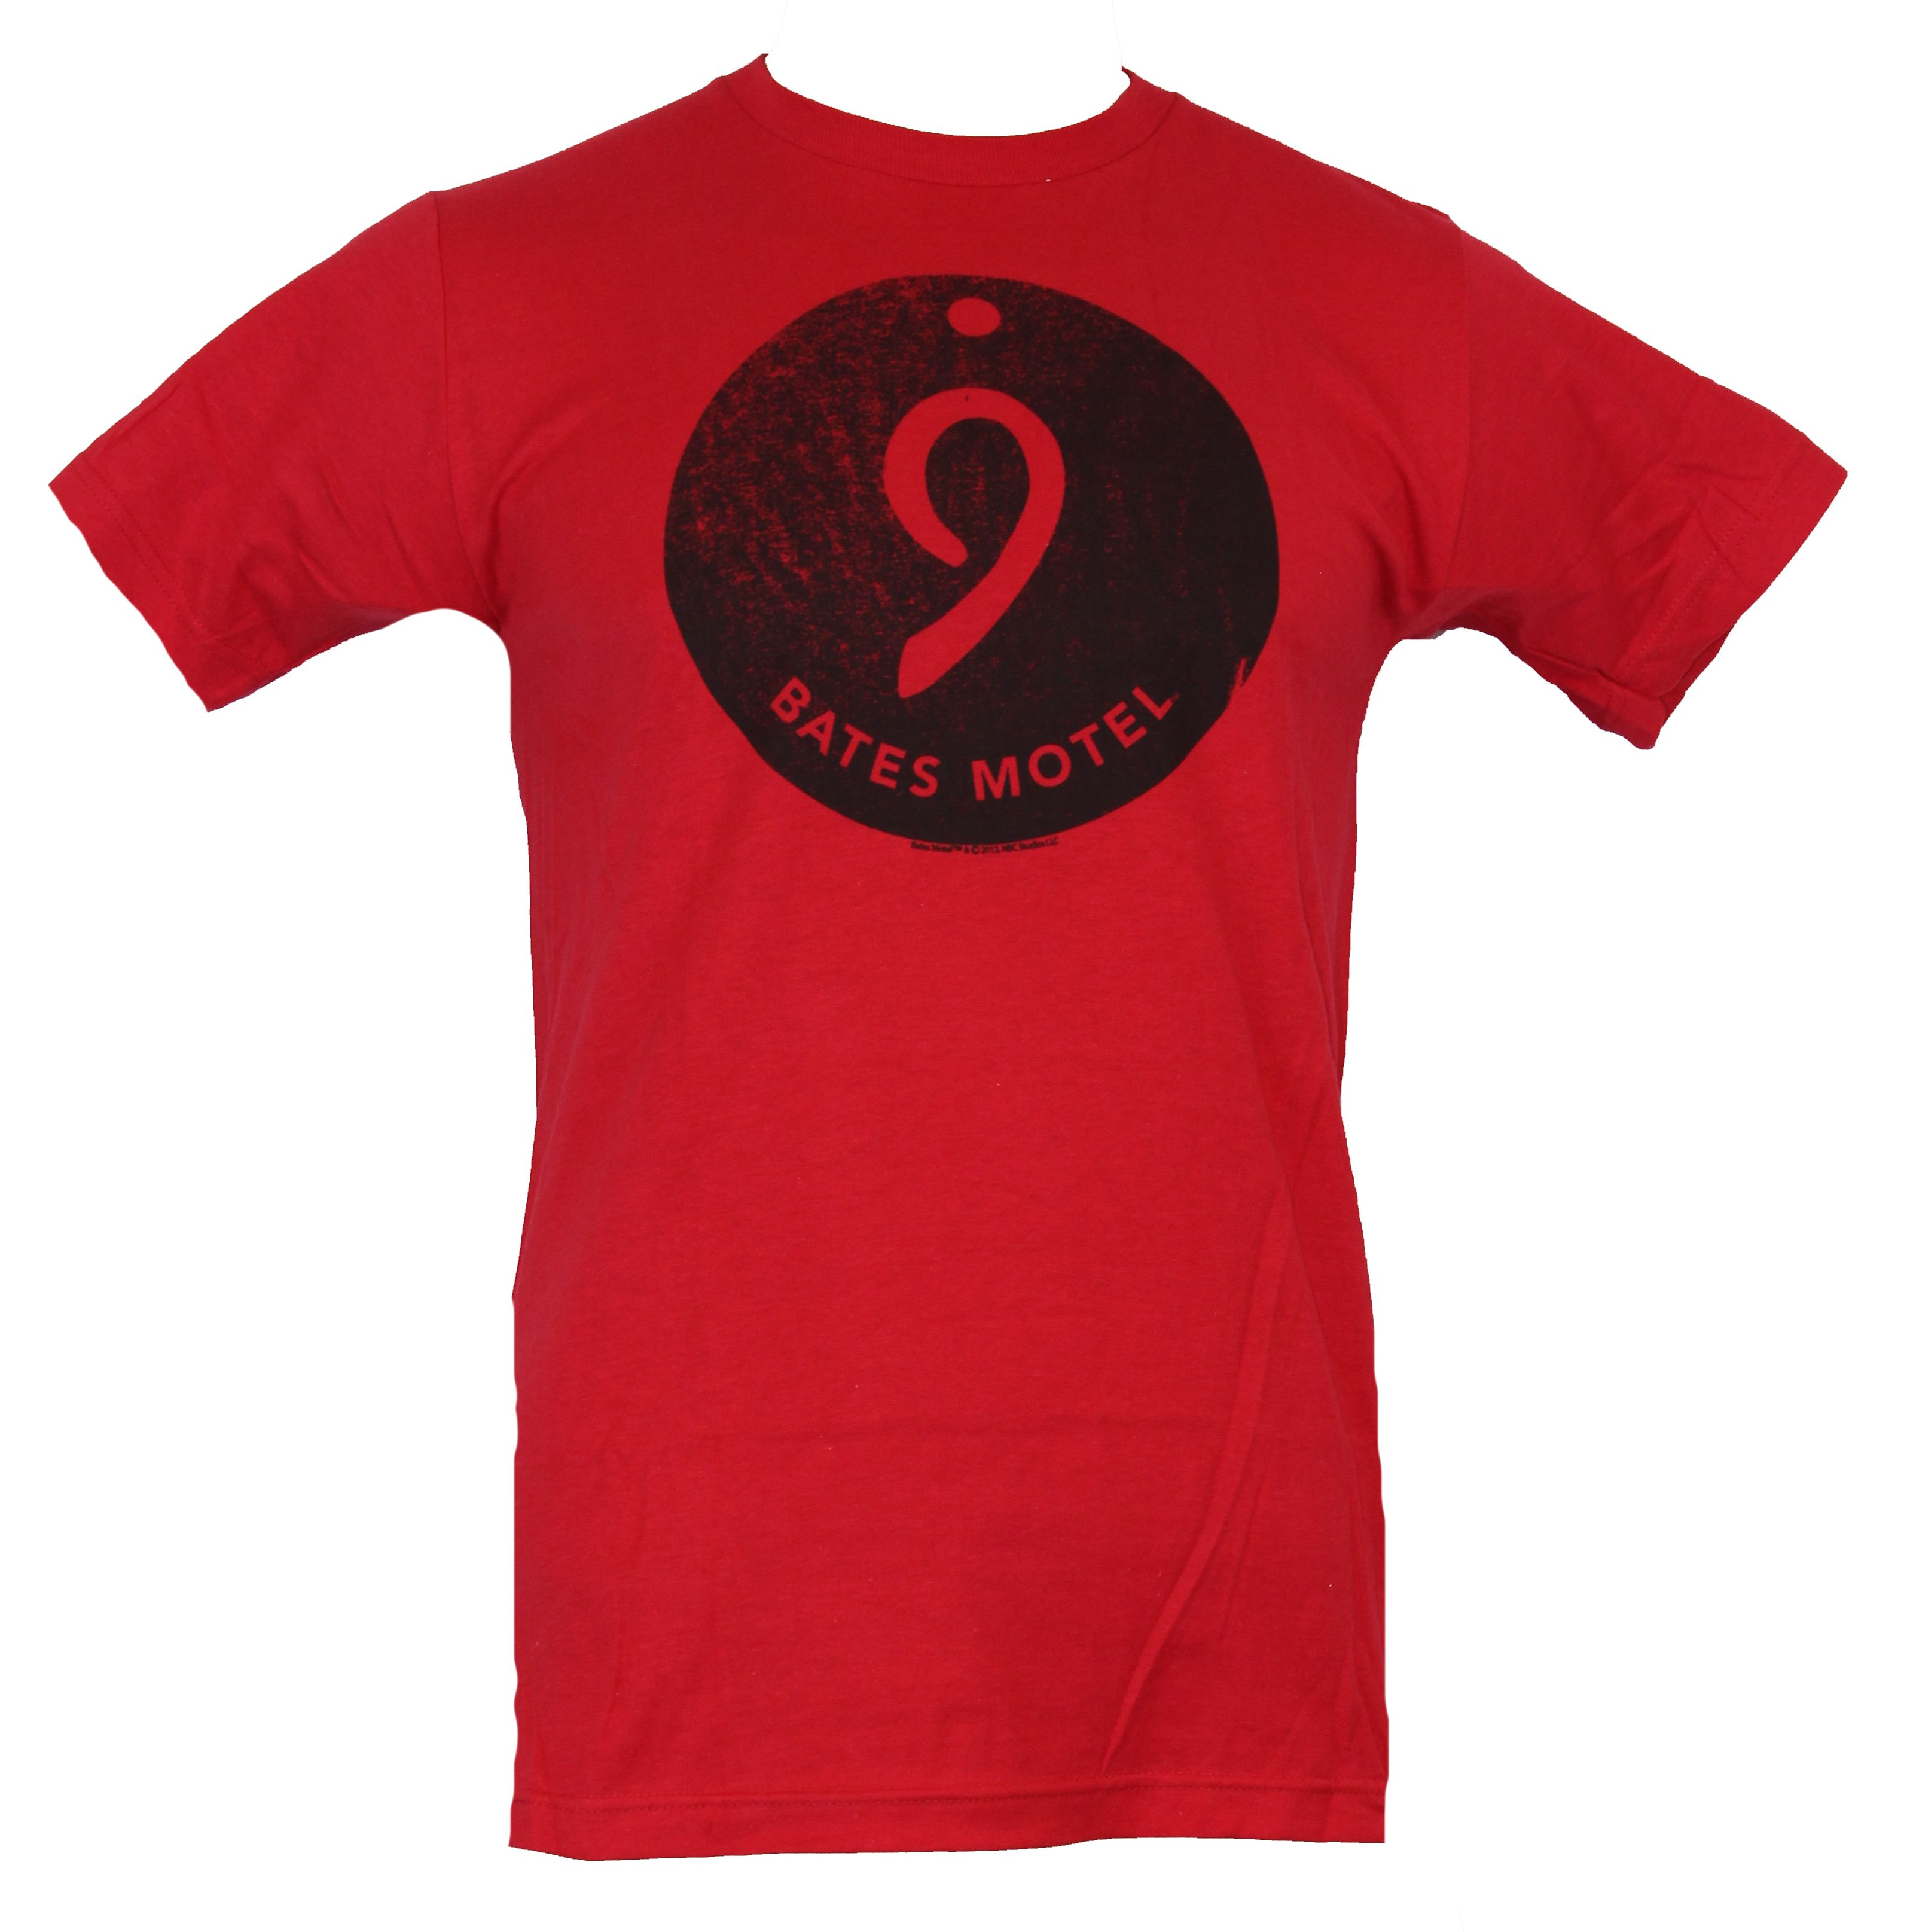 IMPB Bates Motel  Mens T-Shirt - Room 9 Nine Distressed Circle Image Red at Sears.com